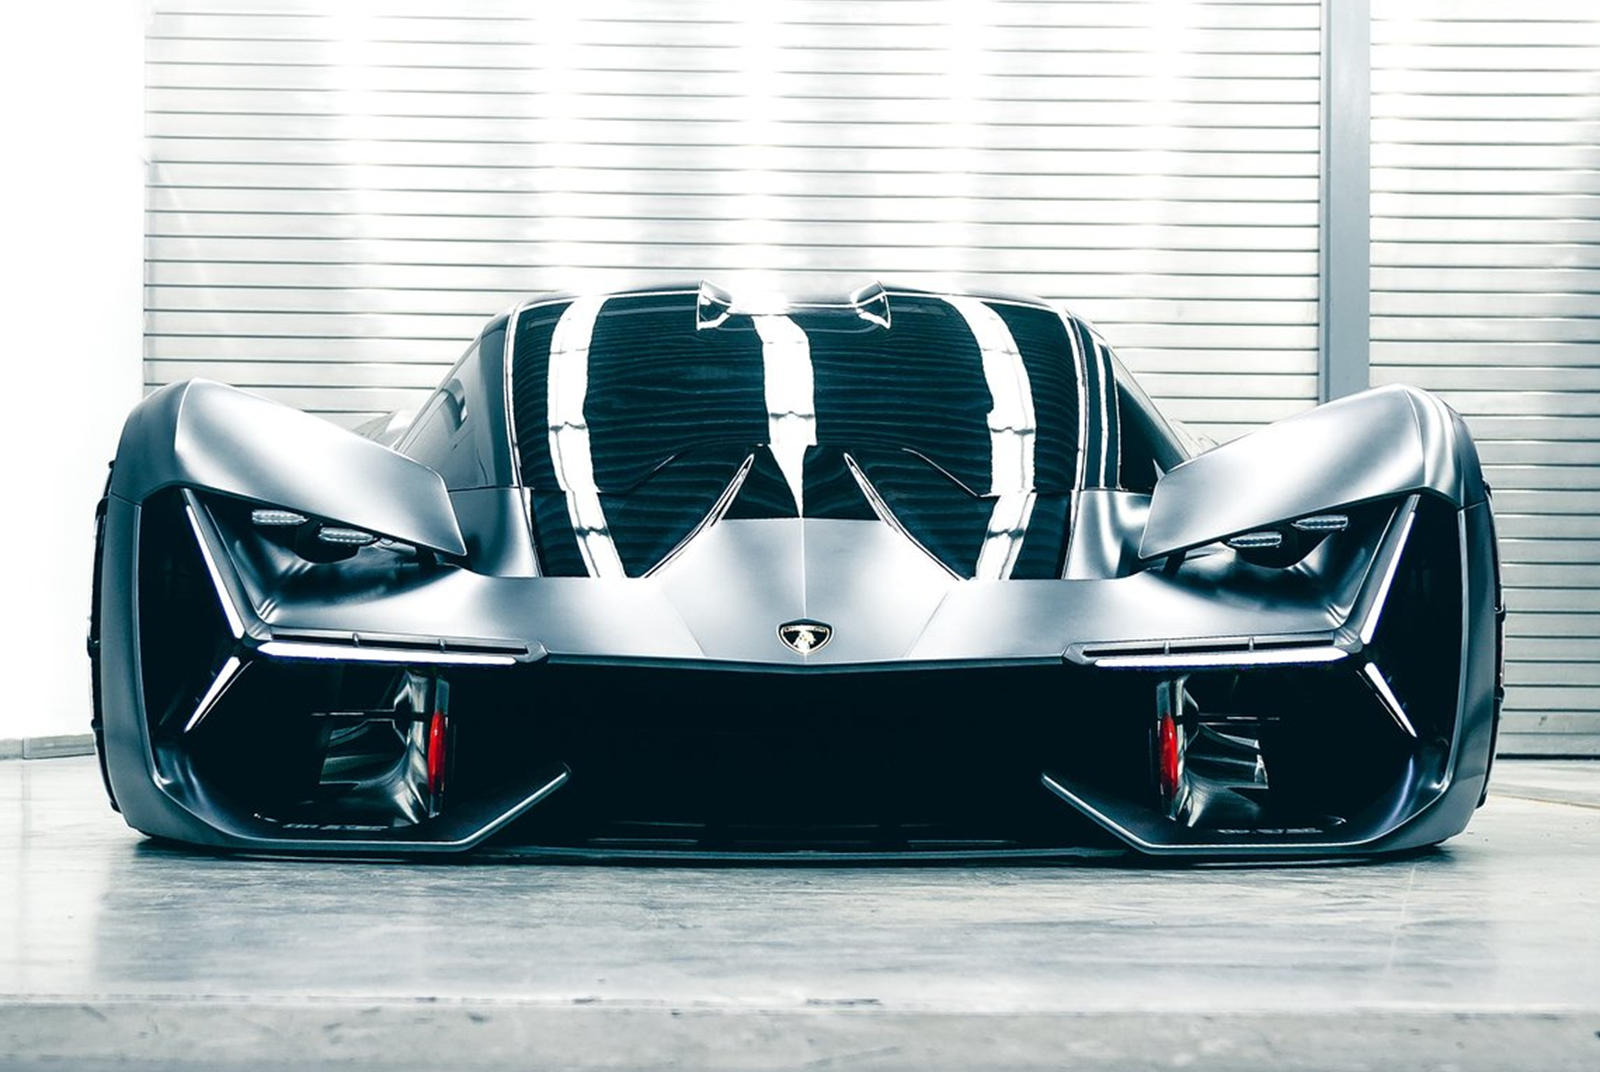 Lamborghini S First Hybrid Supercar Could Have This Most Appropriate